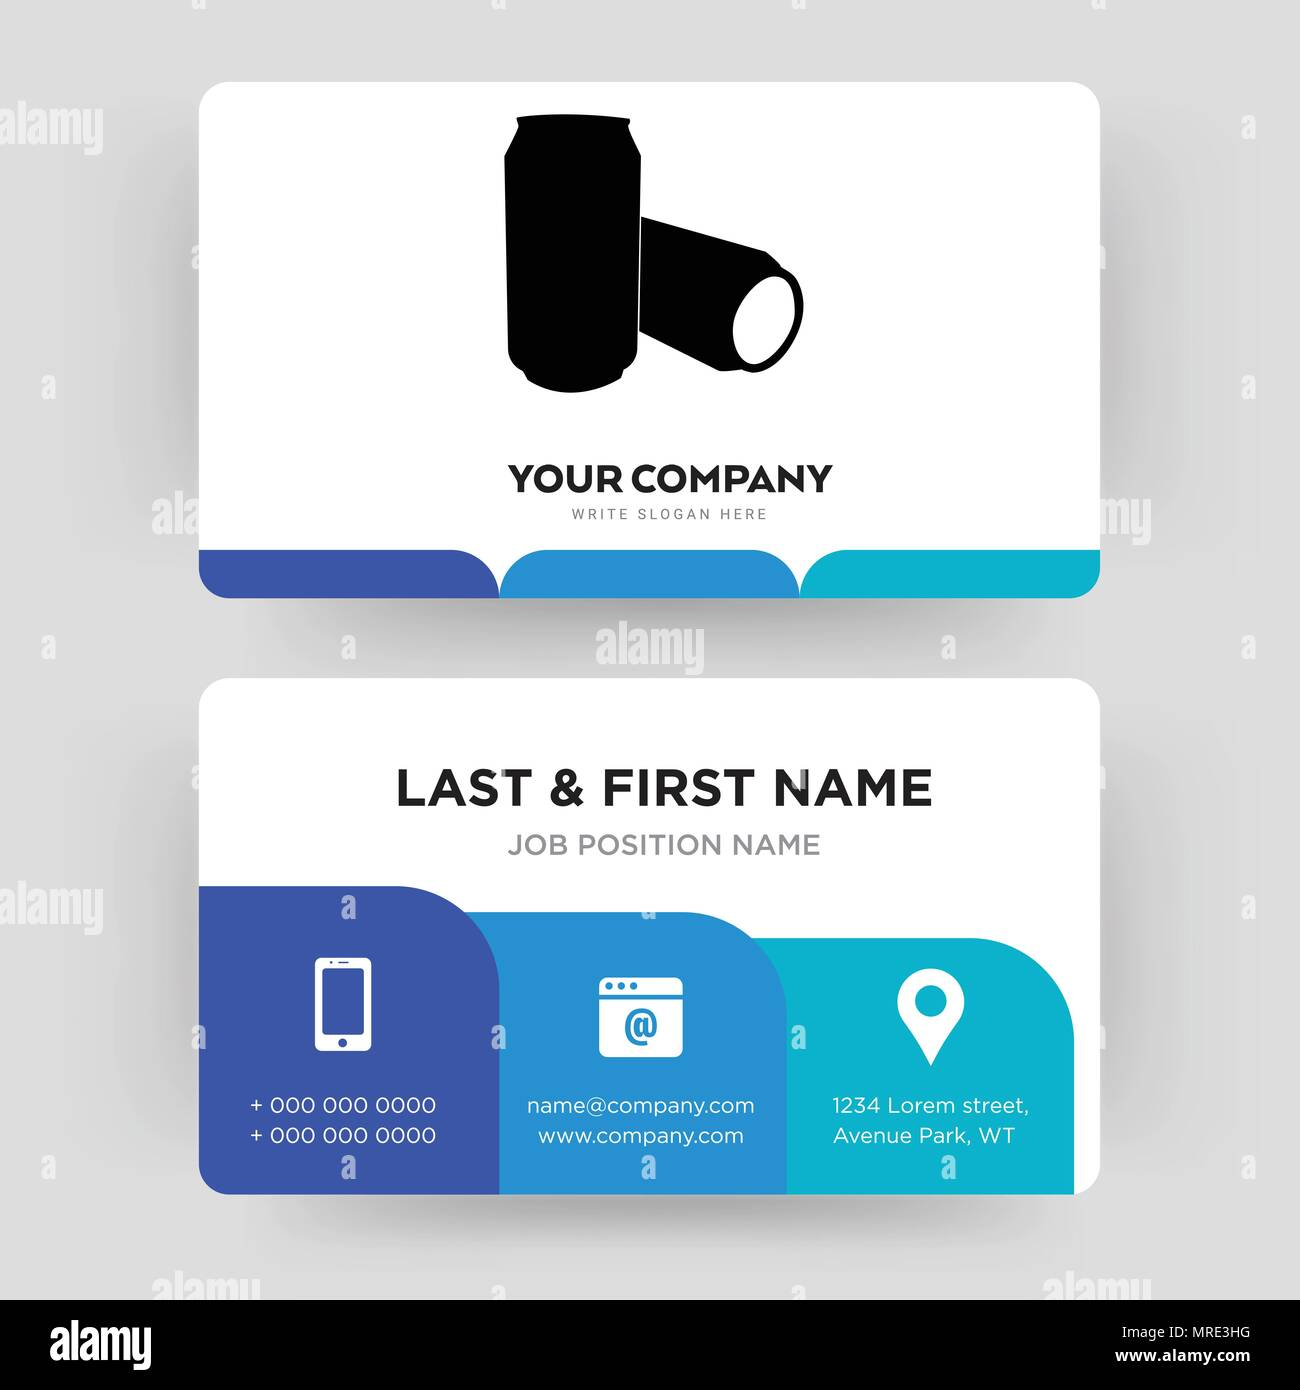 beer can business card design template visiting for your company